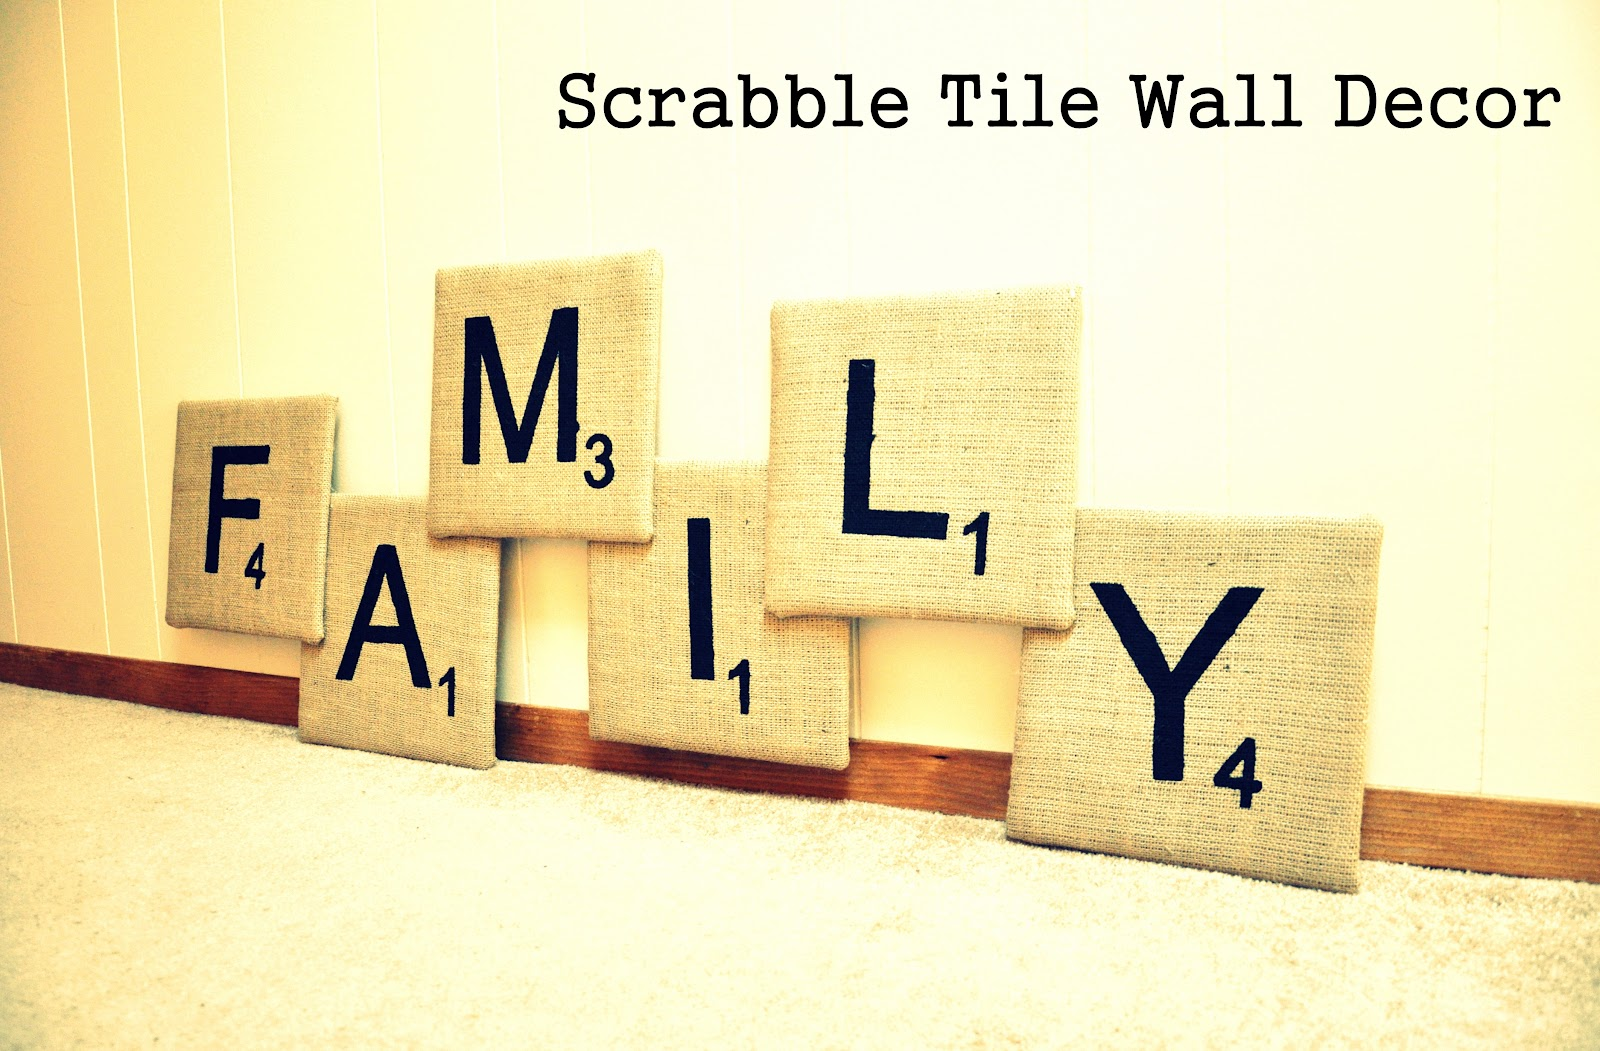 Scrabble Letter Wall Decor The Kc Experience Tutorial Family Scrabble Tile Wall Decor